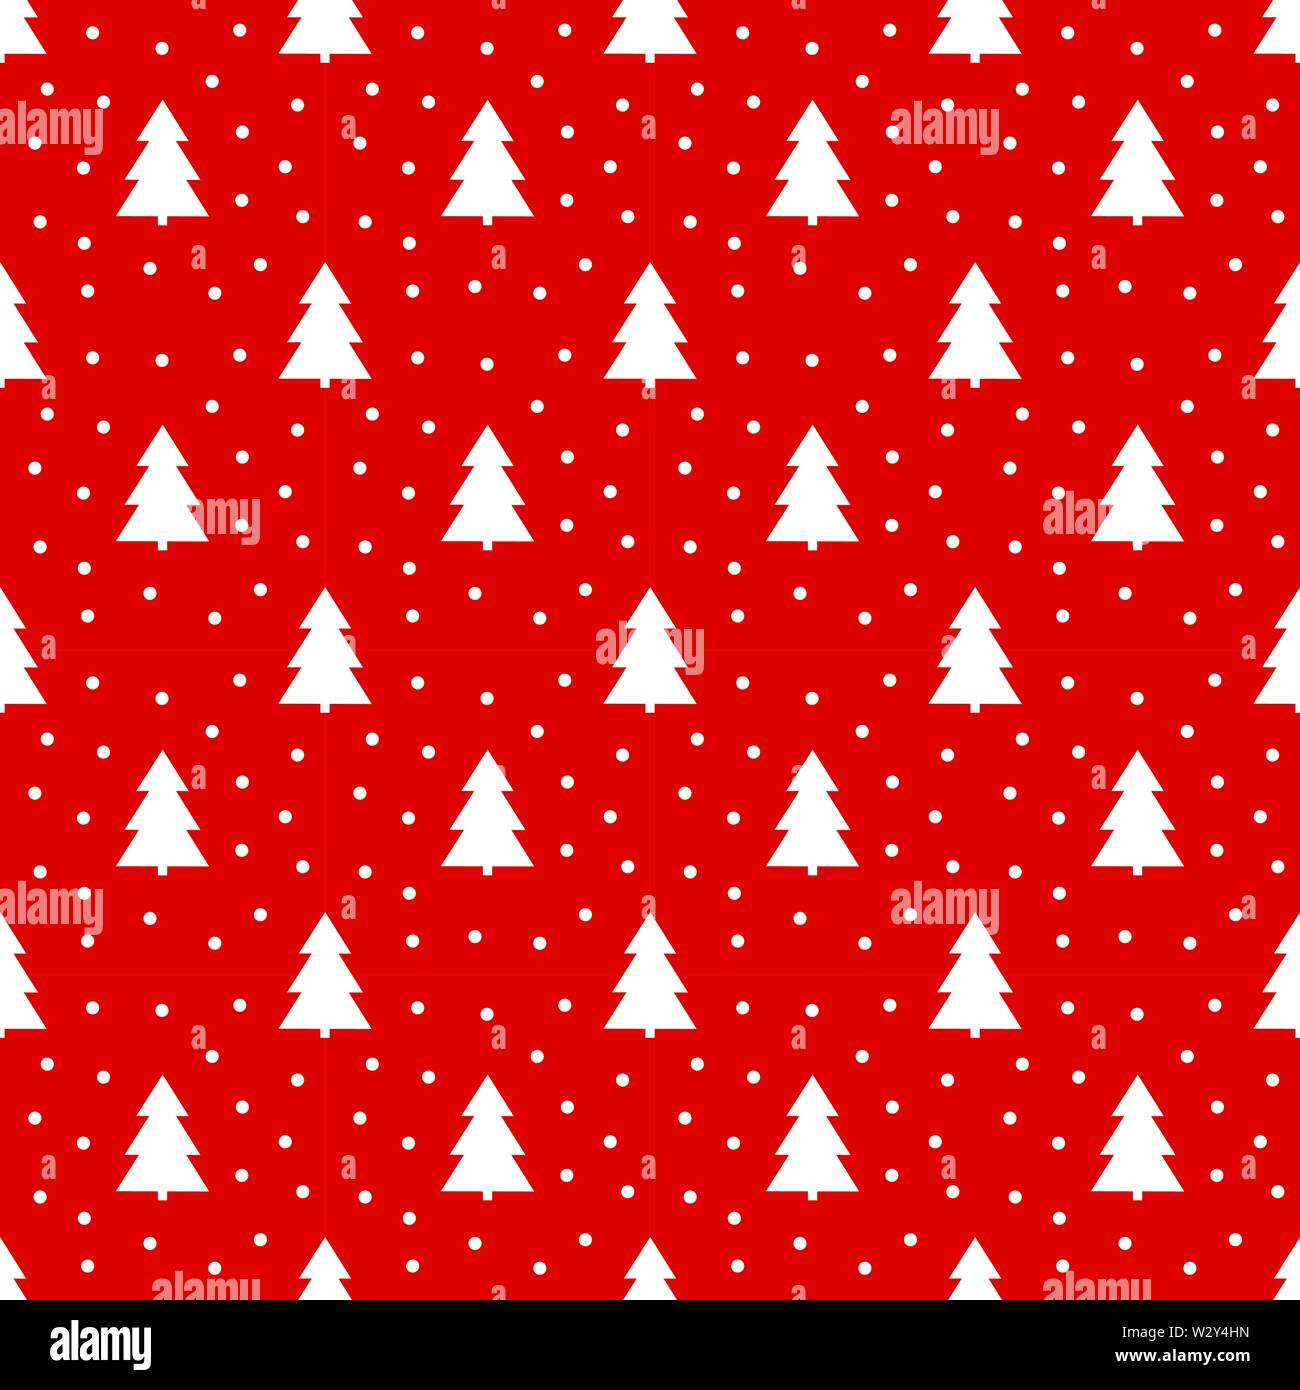 White Christmas trees and snow on red background, Christmas pattern. - Stock Image